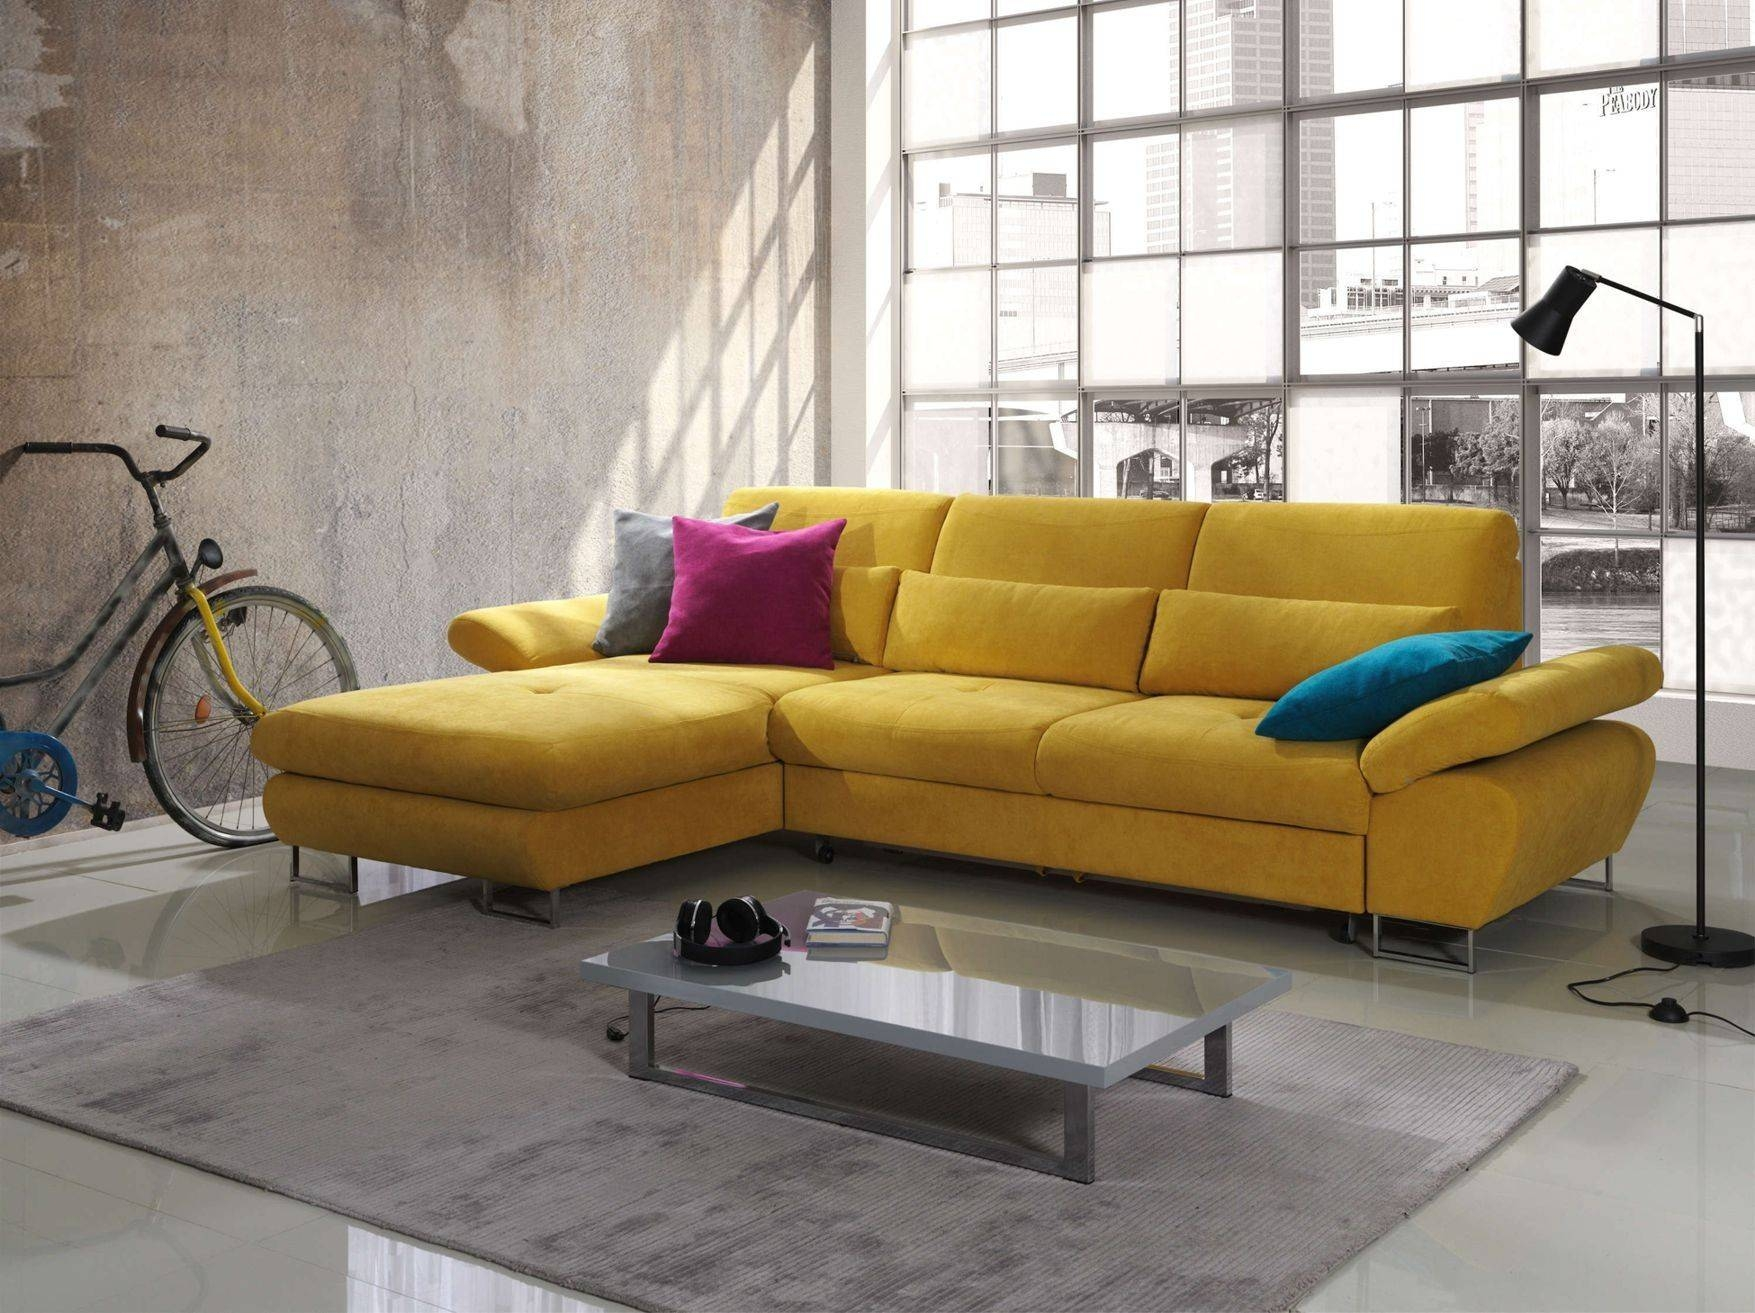 Amazing Apartment Size Sectional Sofa With Chaise 12 With intended for Albany Industries Sectional Sofa (Image 16 of 30)